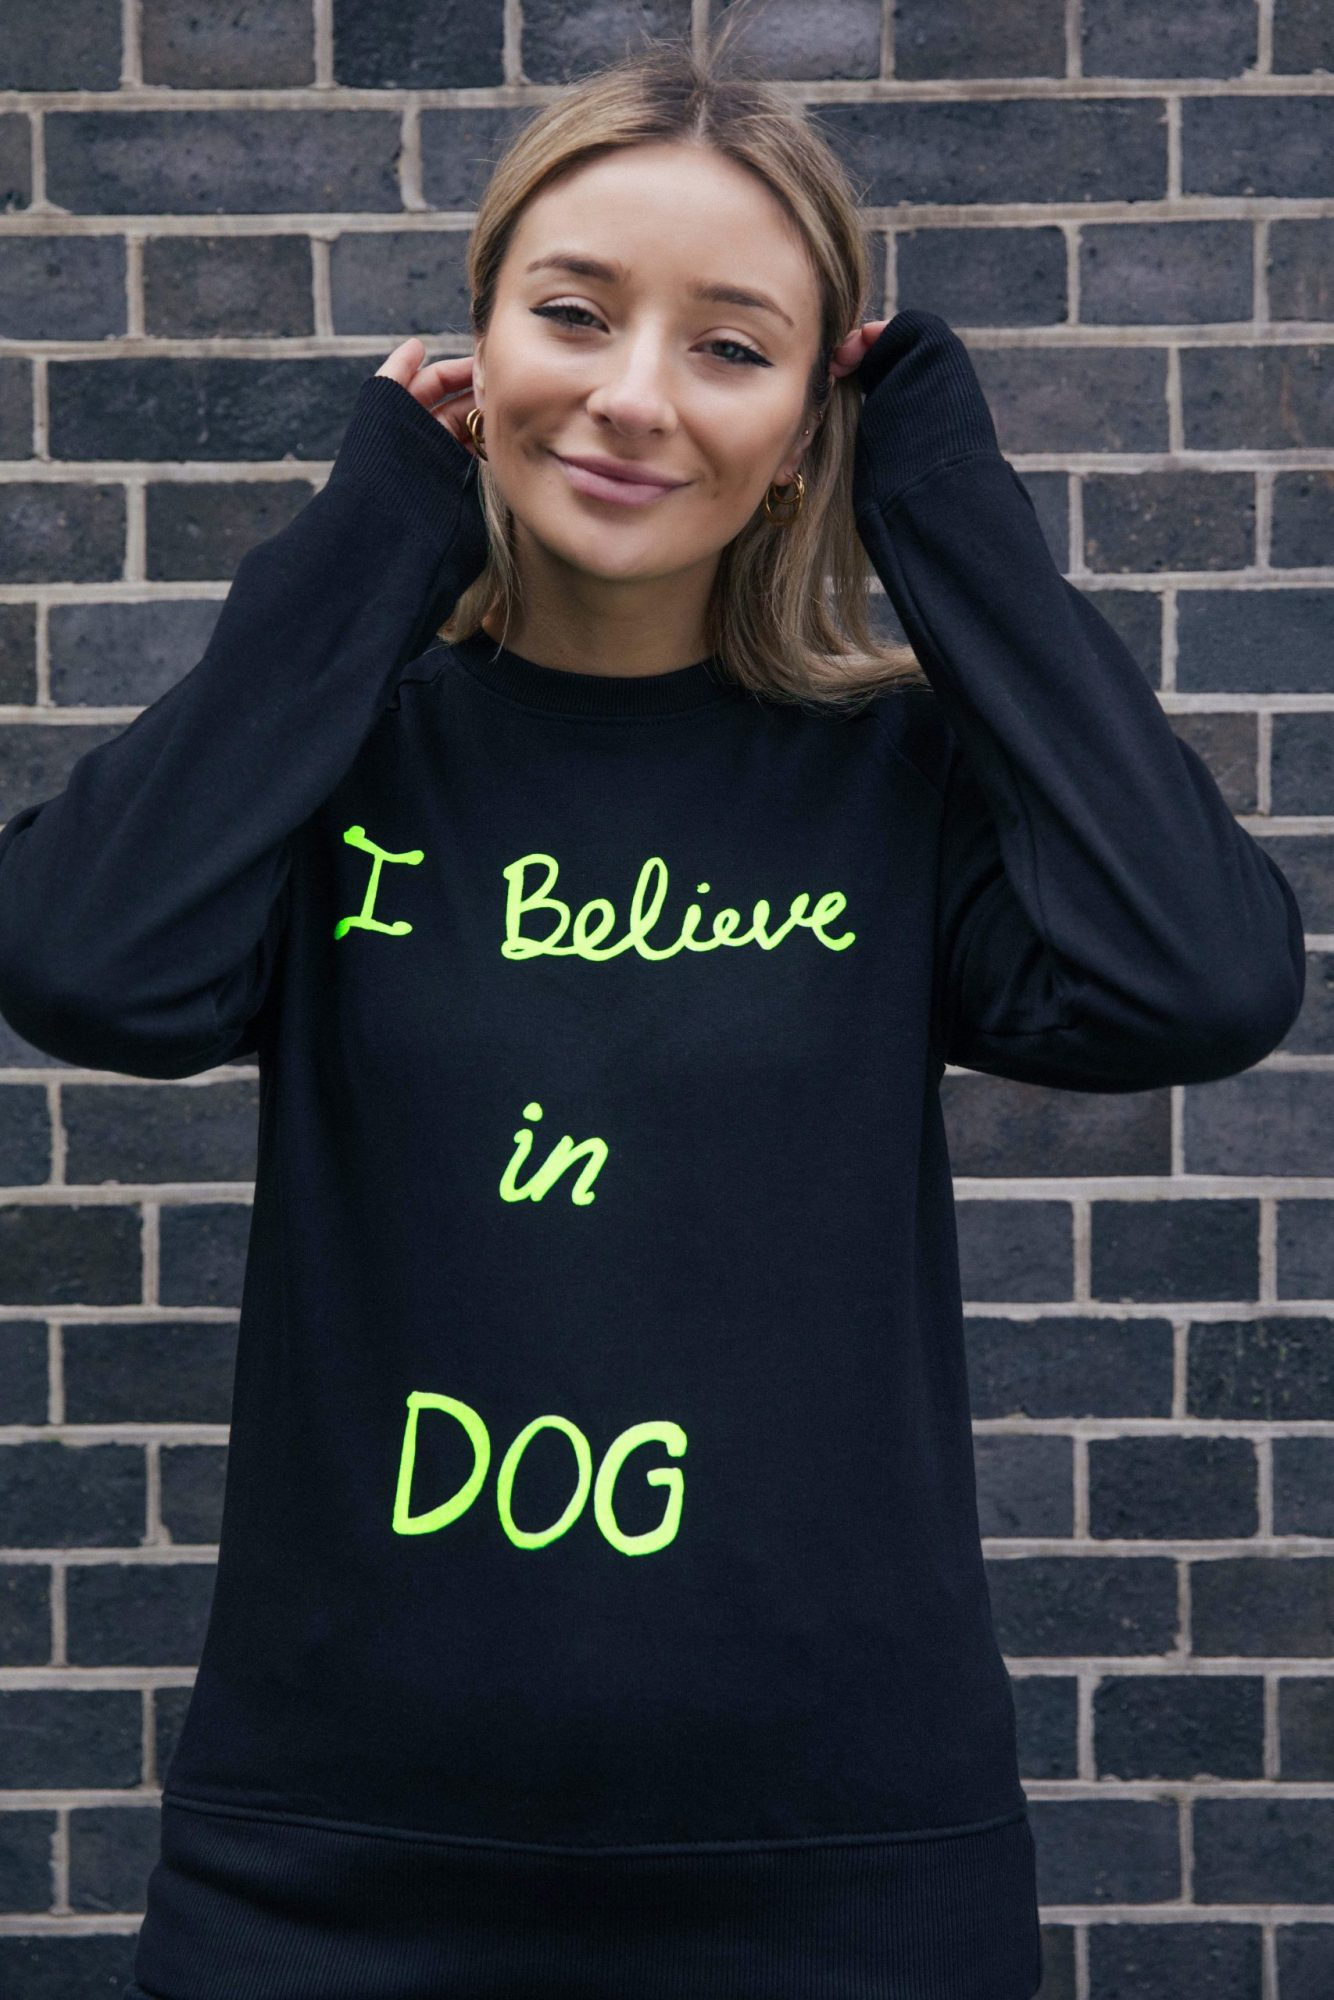 Do you believe in dog?